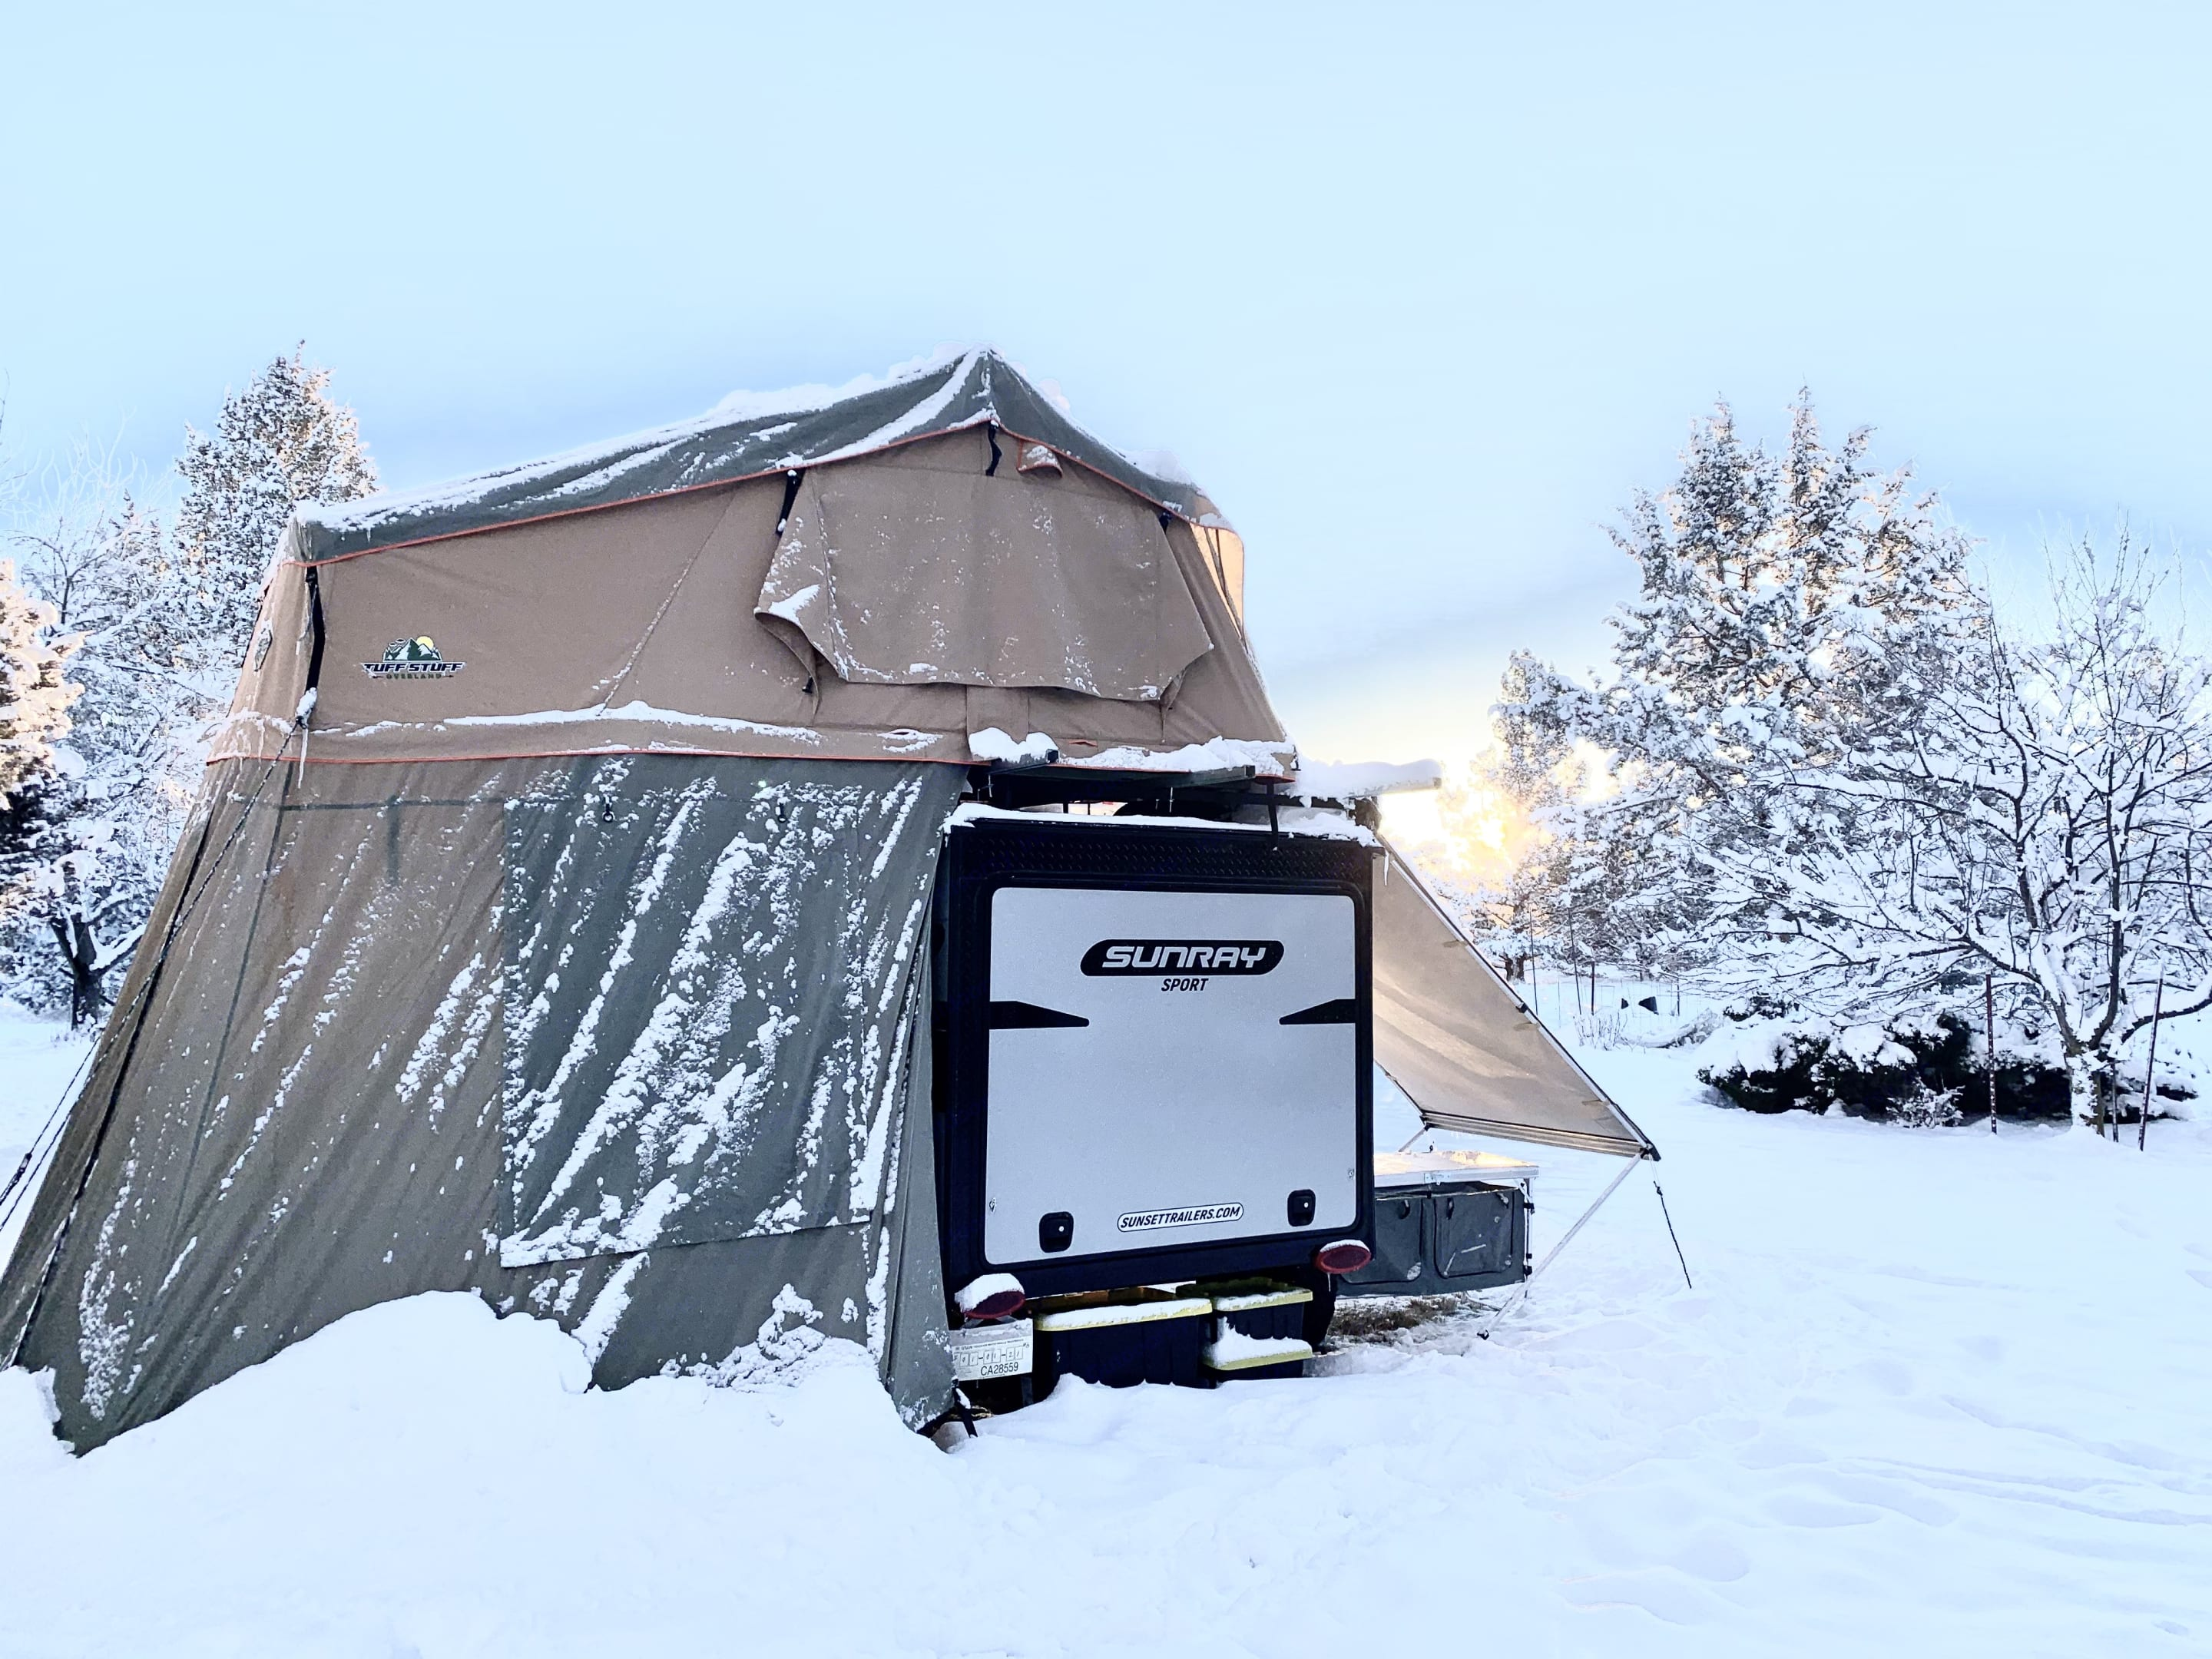 We've tested it in four seasons! Onboard heater - big difference.  With the Annex, Awning and RV interior there's plenty of space to escape inside. . Sunset Park & Rv Inc. Sunray 109 Sport 2021